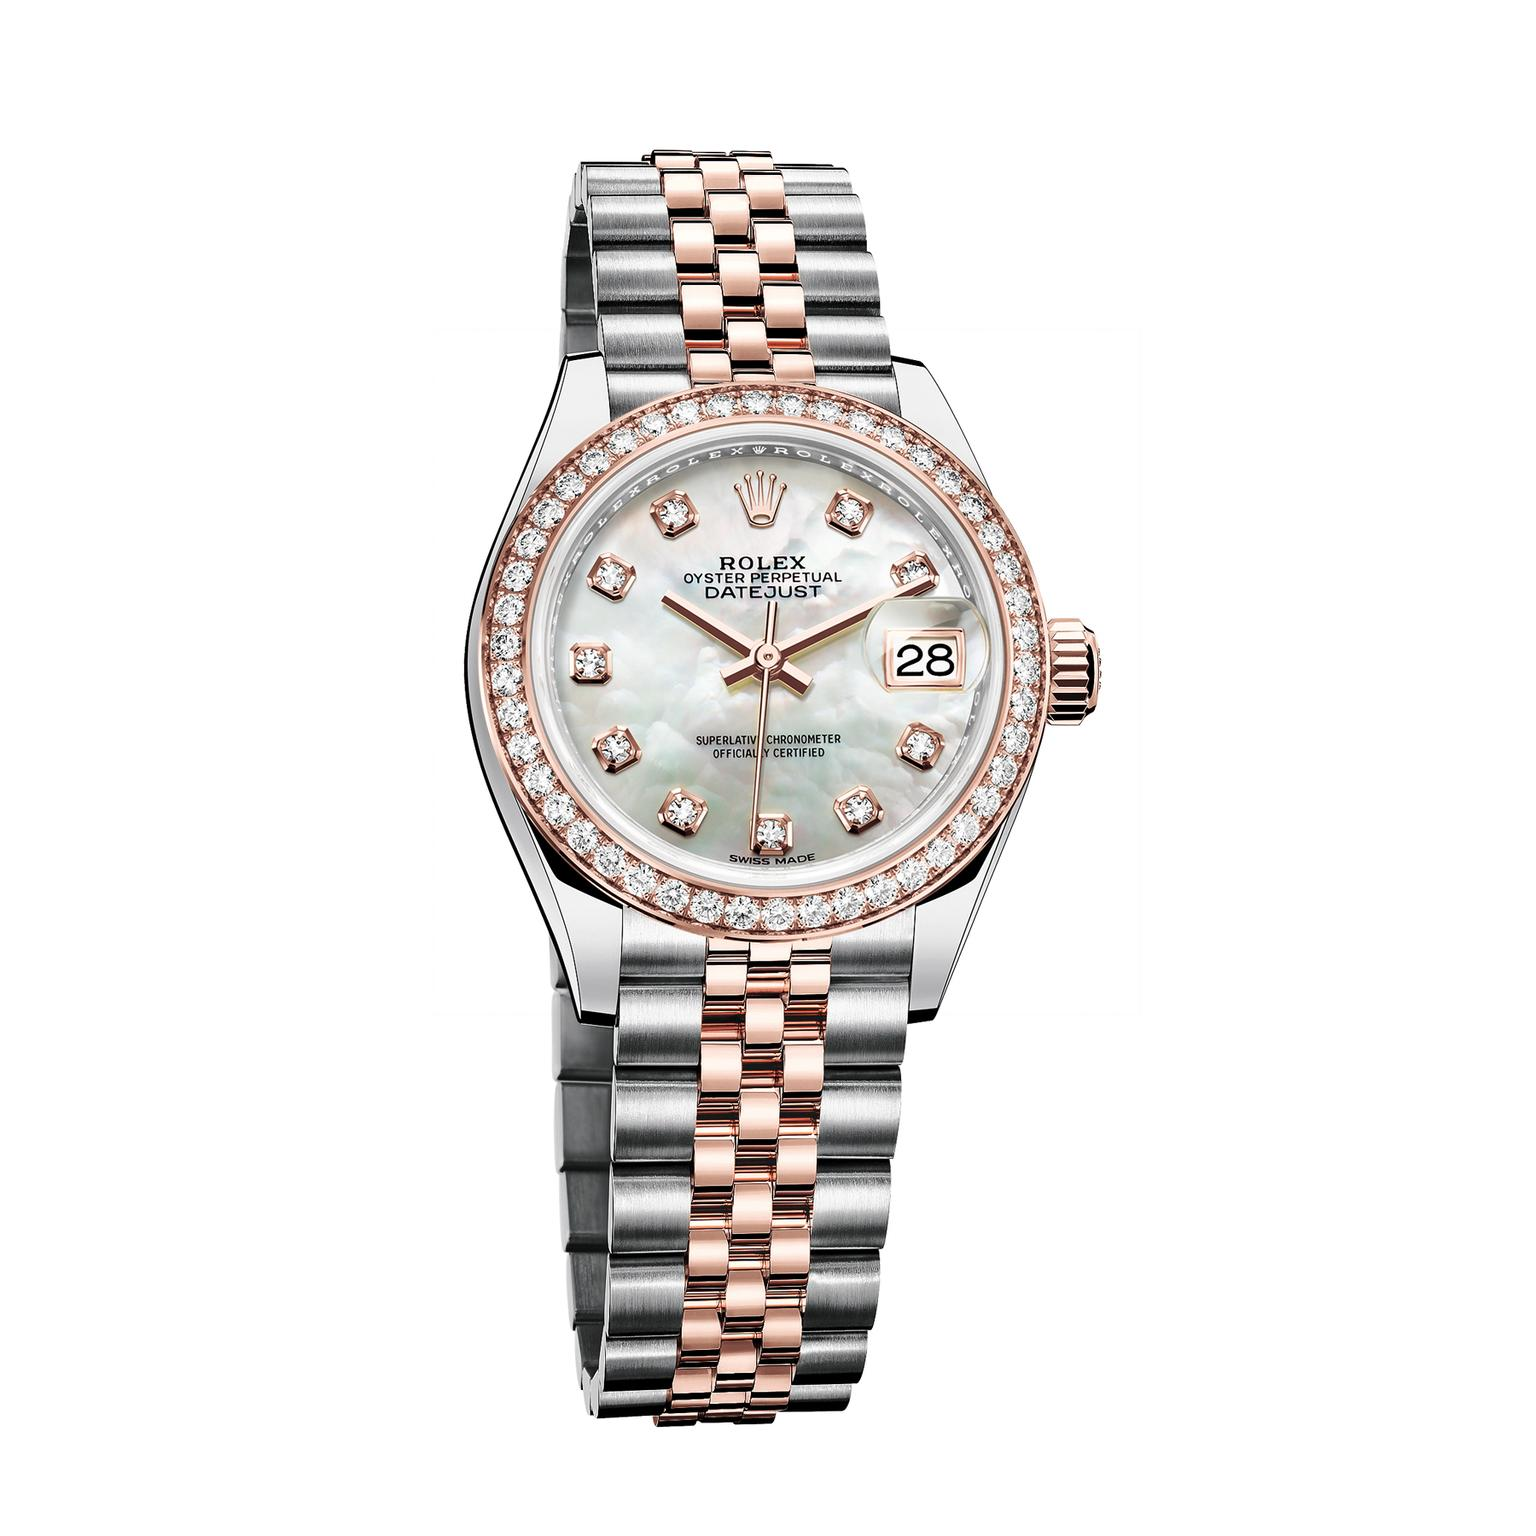 Rolex Oyster Perpetual Rose Gold Oyster Perpetual Lady Datejust 28mm Watch In Everose Rolesor